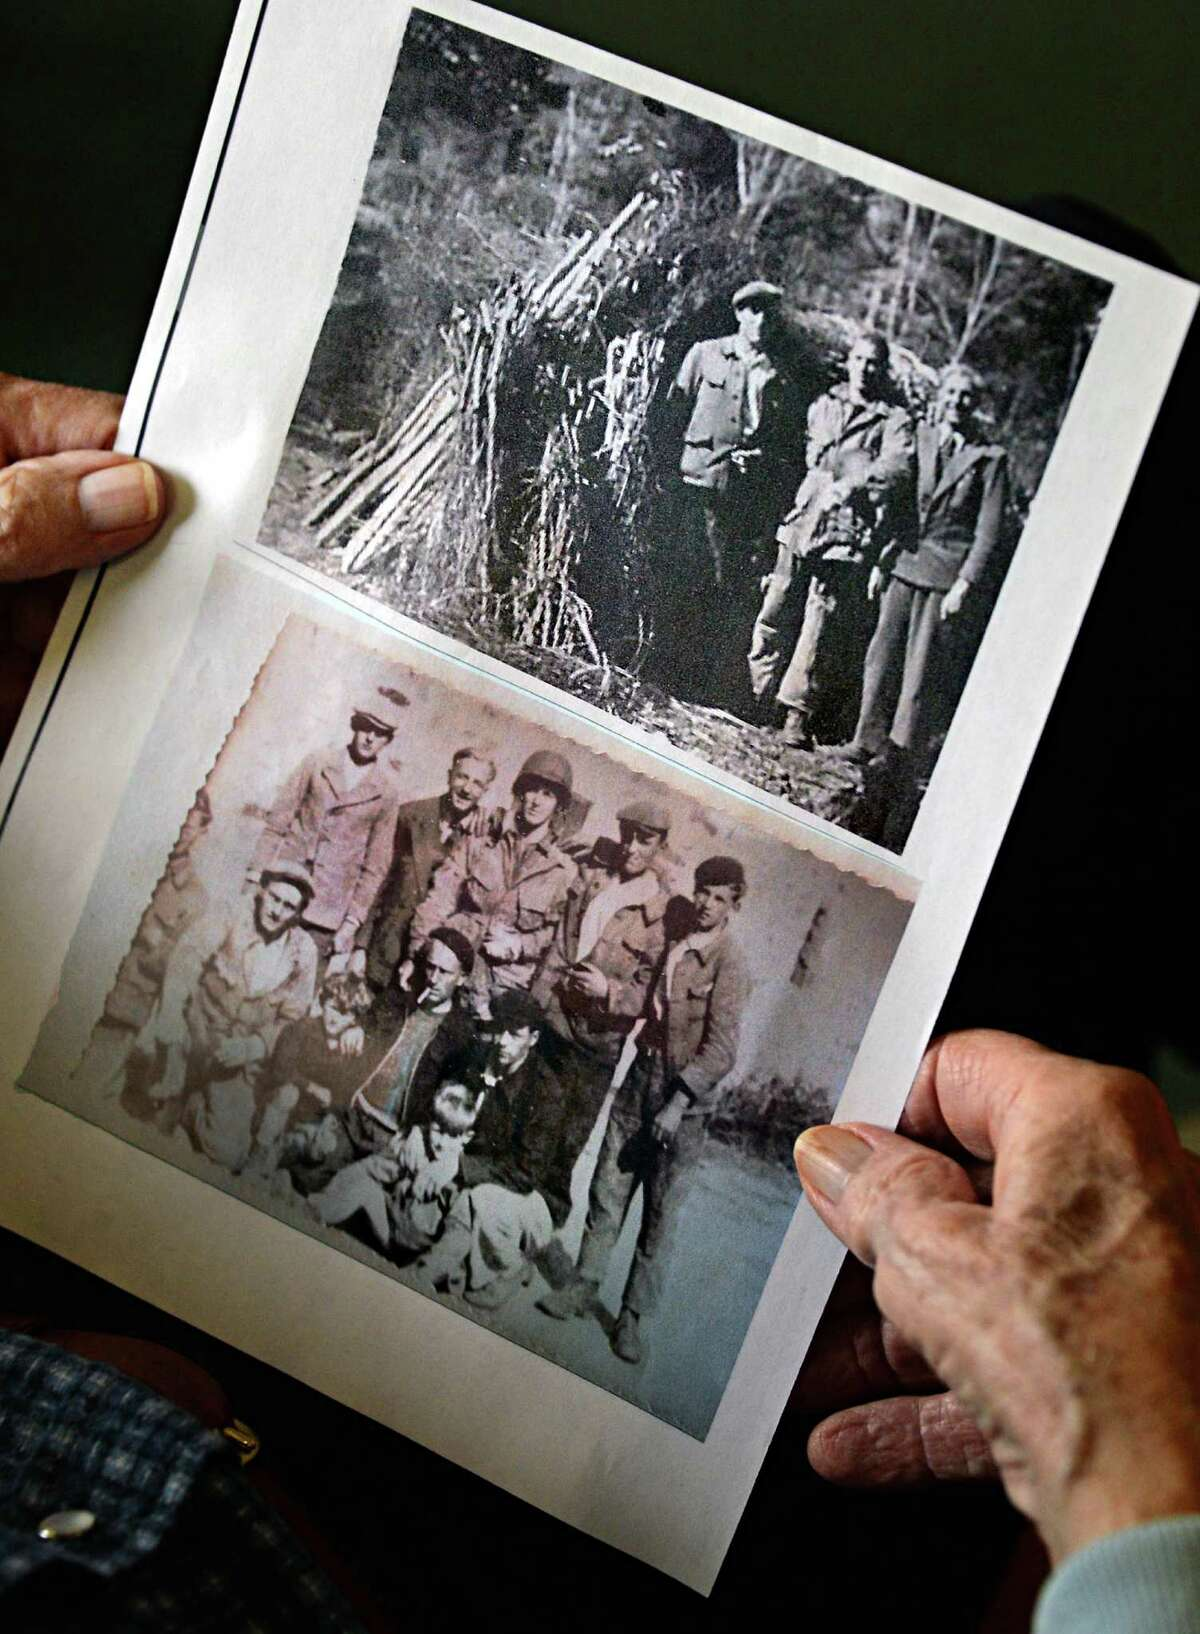 Paul Calhoun Sr., 92, holds photos of French civilians that helped him escape German troops after parachuting into Normandy on D-Day June 6, 1944, during an interview at his Woodlawn Common residence Thursday May 29, 2014, in Saratoga Springs, NY. (John Carl D'Annibale / Times Union